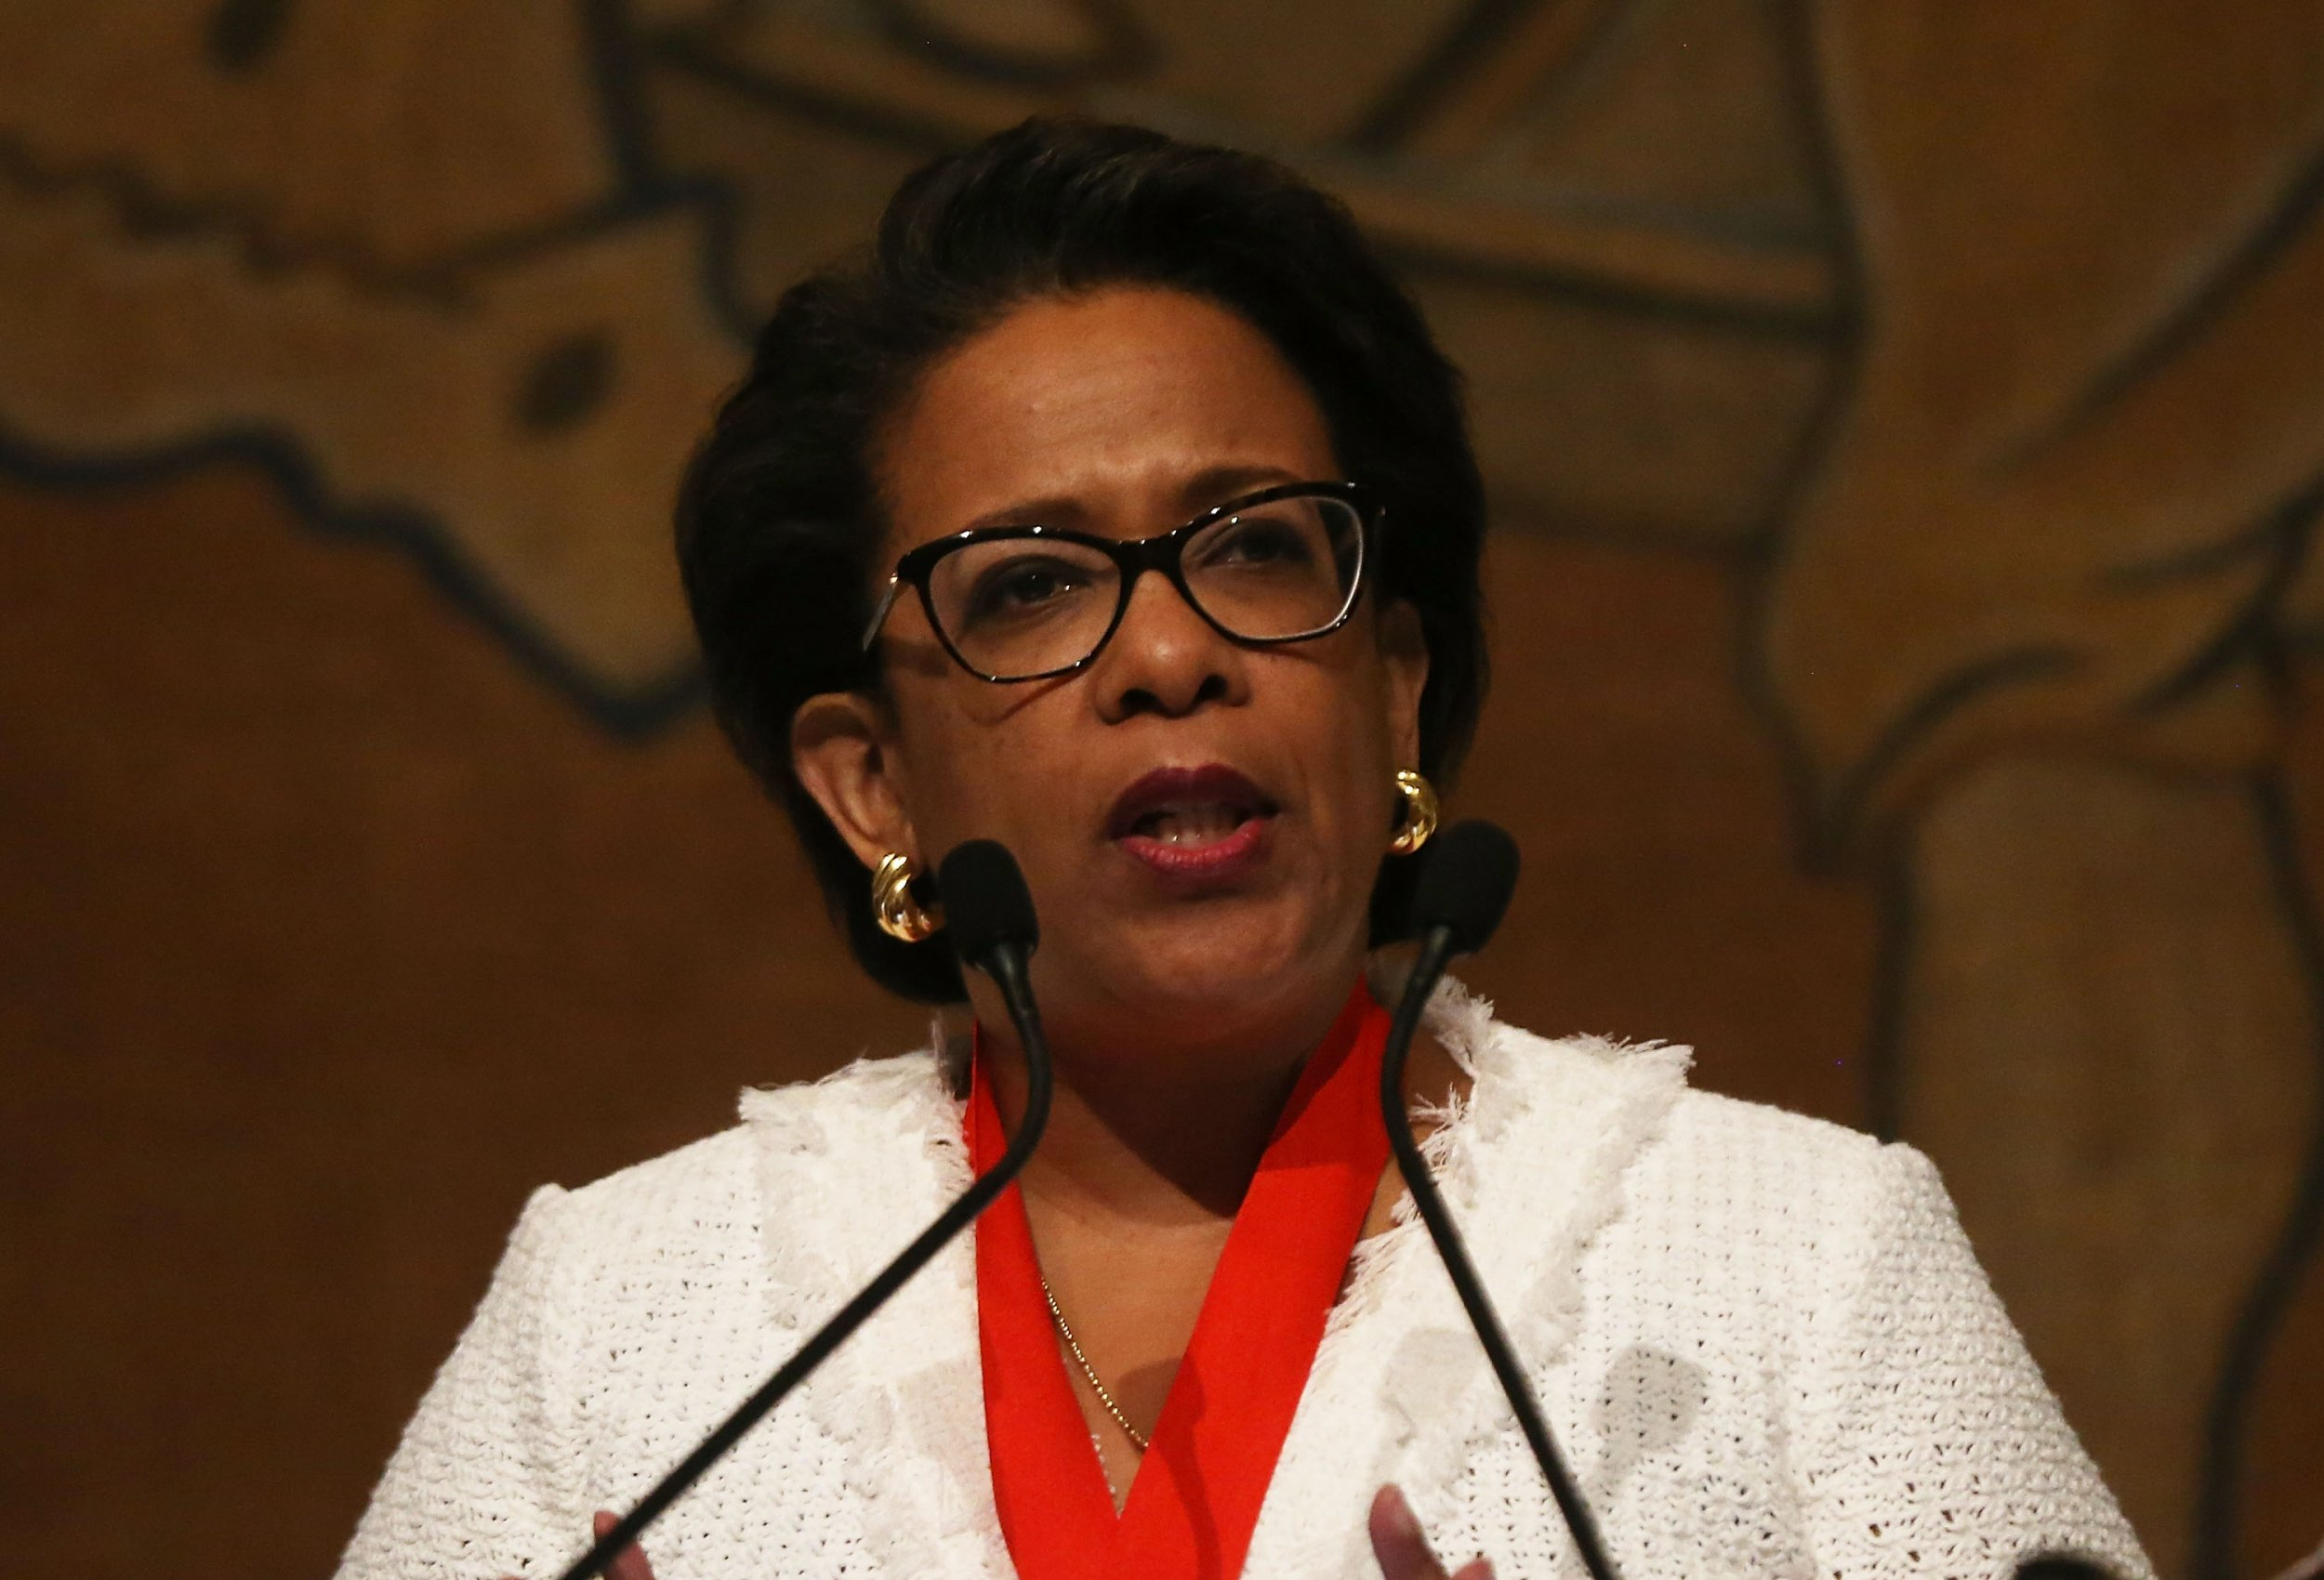 After Clinton Lynch Tarmac Meeting Fbi Scrambled To Find And Punish